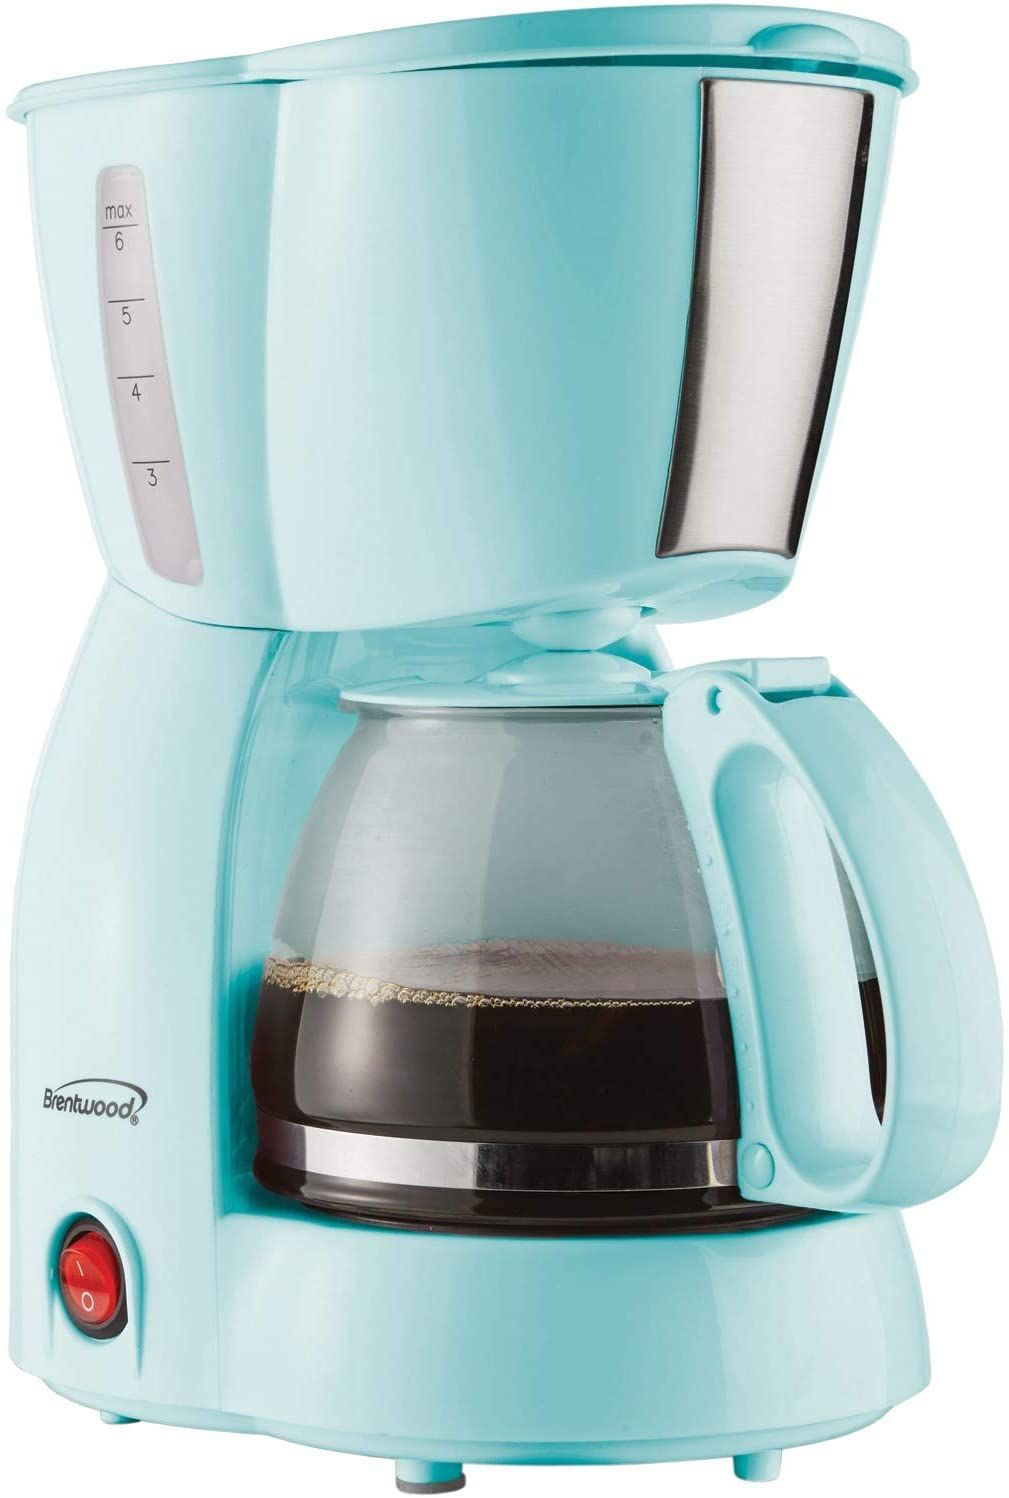 Brentwood Ts 213bl 4 Cup Coffee Maker Blue In 2020 4 Cup Coffee Maker Coffee Maker Coffee Filters